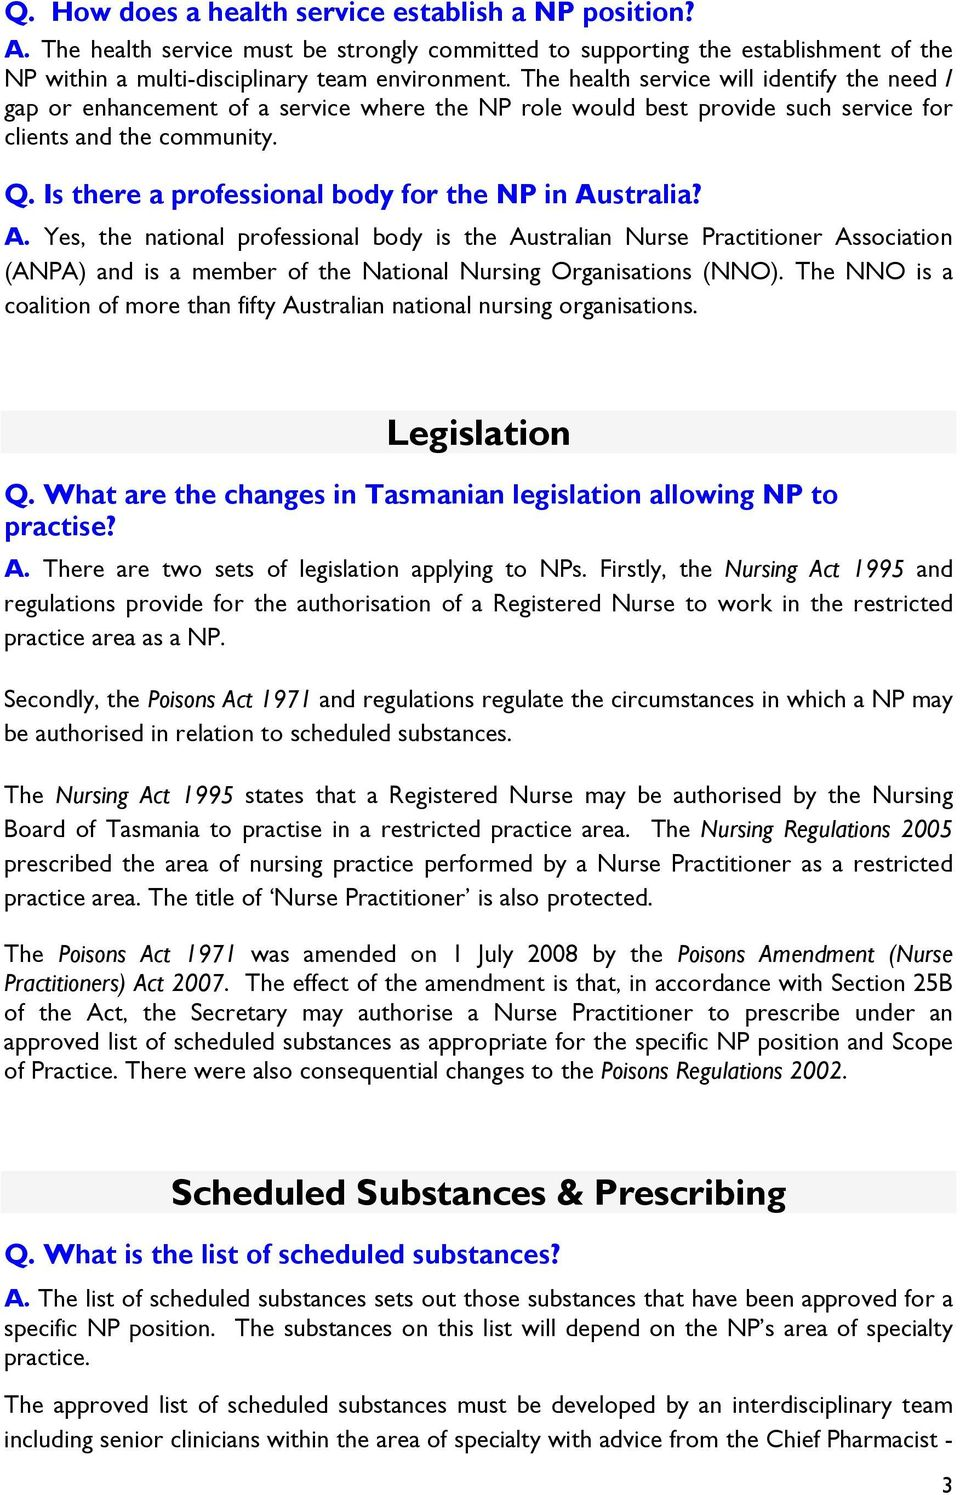 Is there a professional body for the NP in Australia? A. Yes, the national professional body is the Australian Nurse Practitioner Association (ANPA) and is a member of the National Nursing Organisations (NNO).